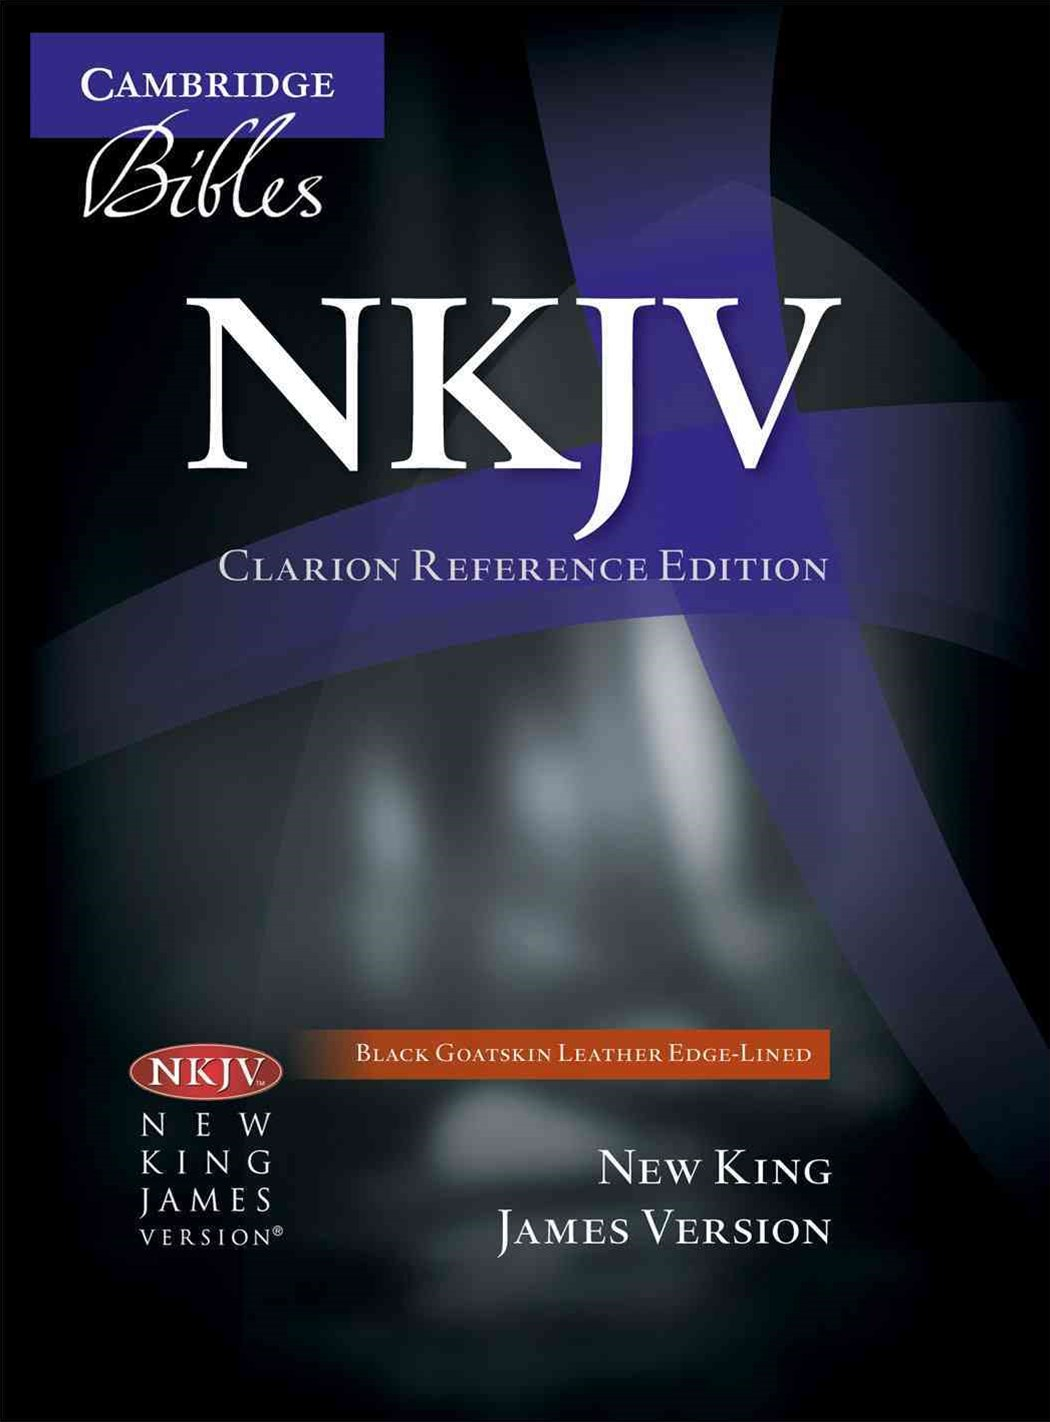 NKJV Clarion Reference Bible NK486:XE Black Goatskin Leather